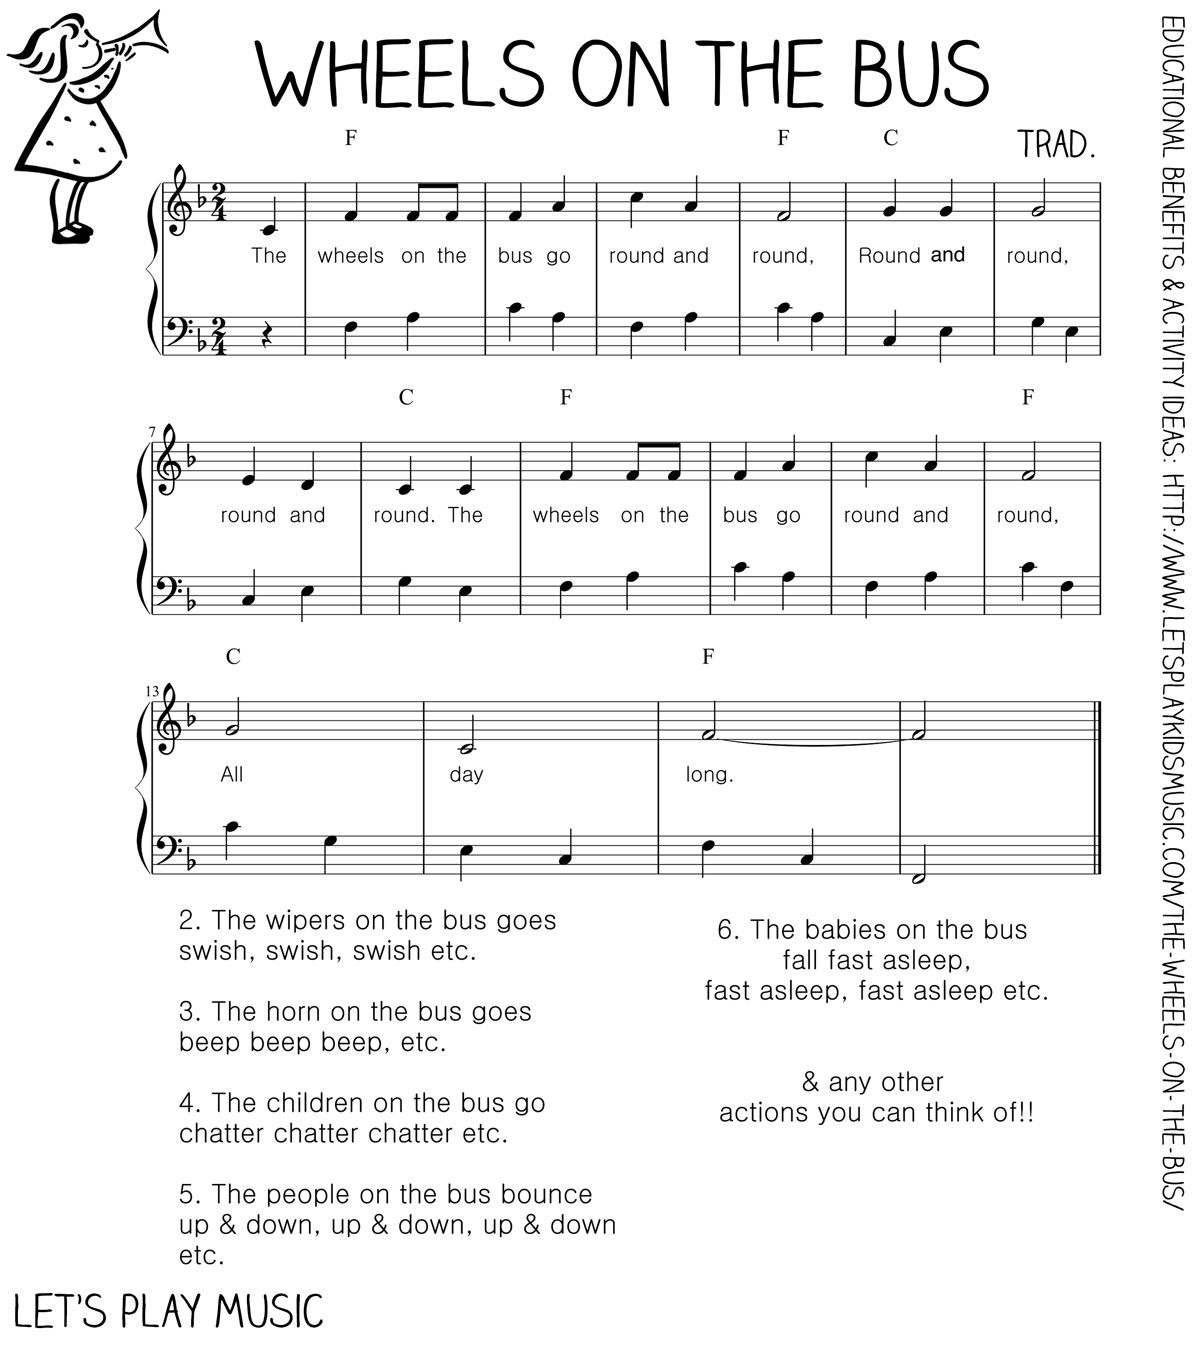 The Wheels On The Bus Action Song With Images Piano Sheet